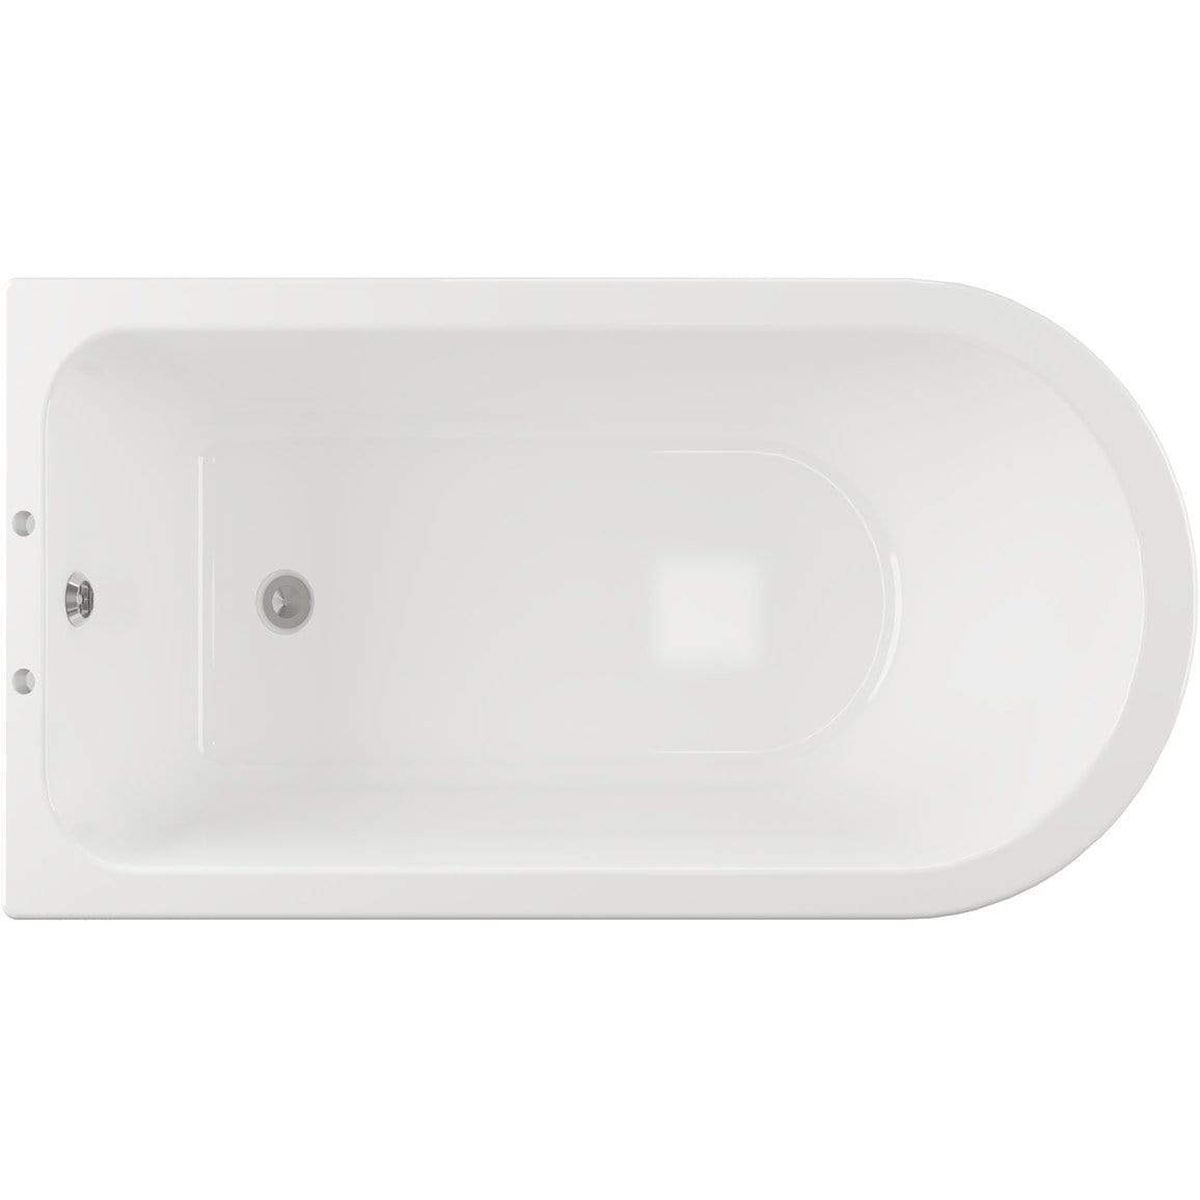 Bathrooms To Love Traditional Corner Freestanding Bath with Feet 1500mm x 750mm 2